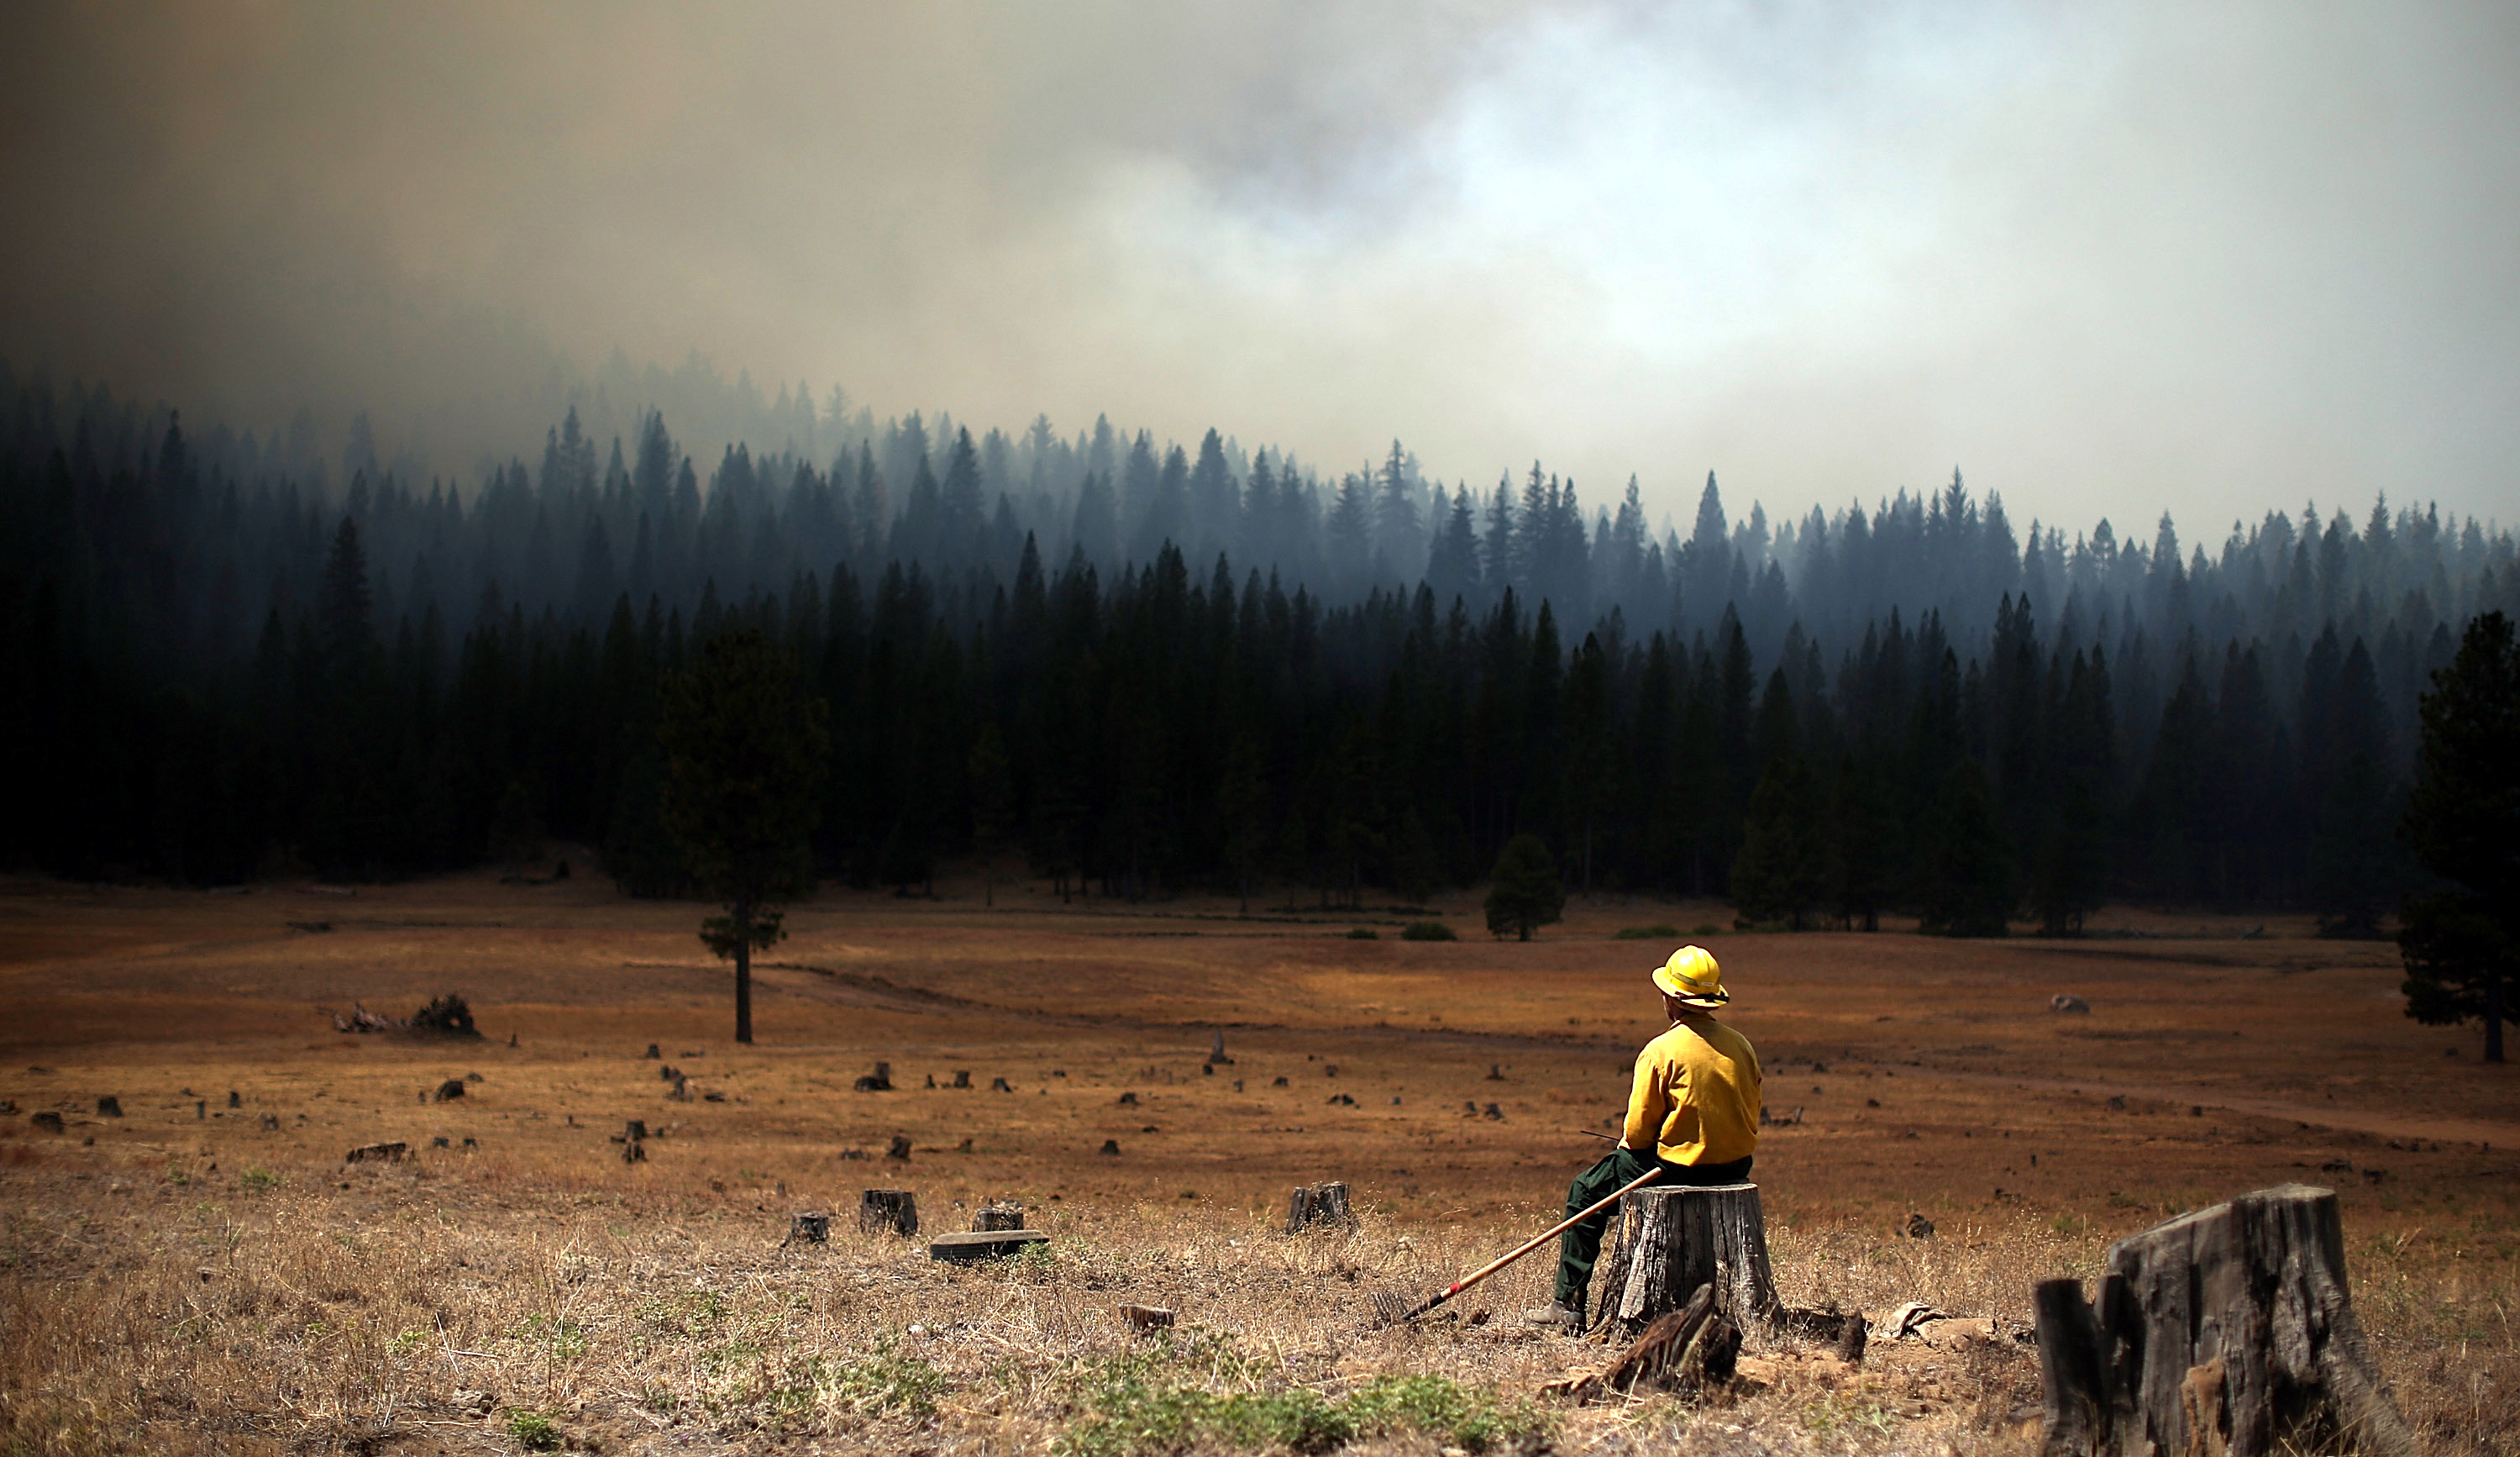 A U.S. Fish and Wildlife Service firefighter monitors the Rim Fire on Aug. 25, 2013 near Groveland, Calif.